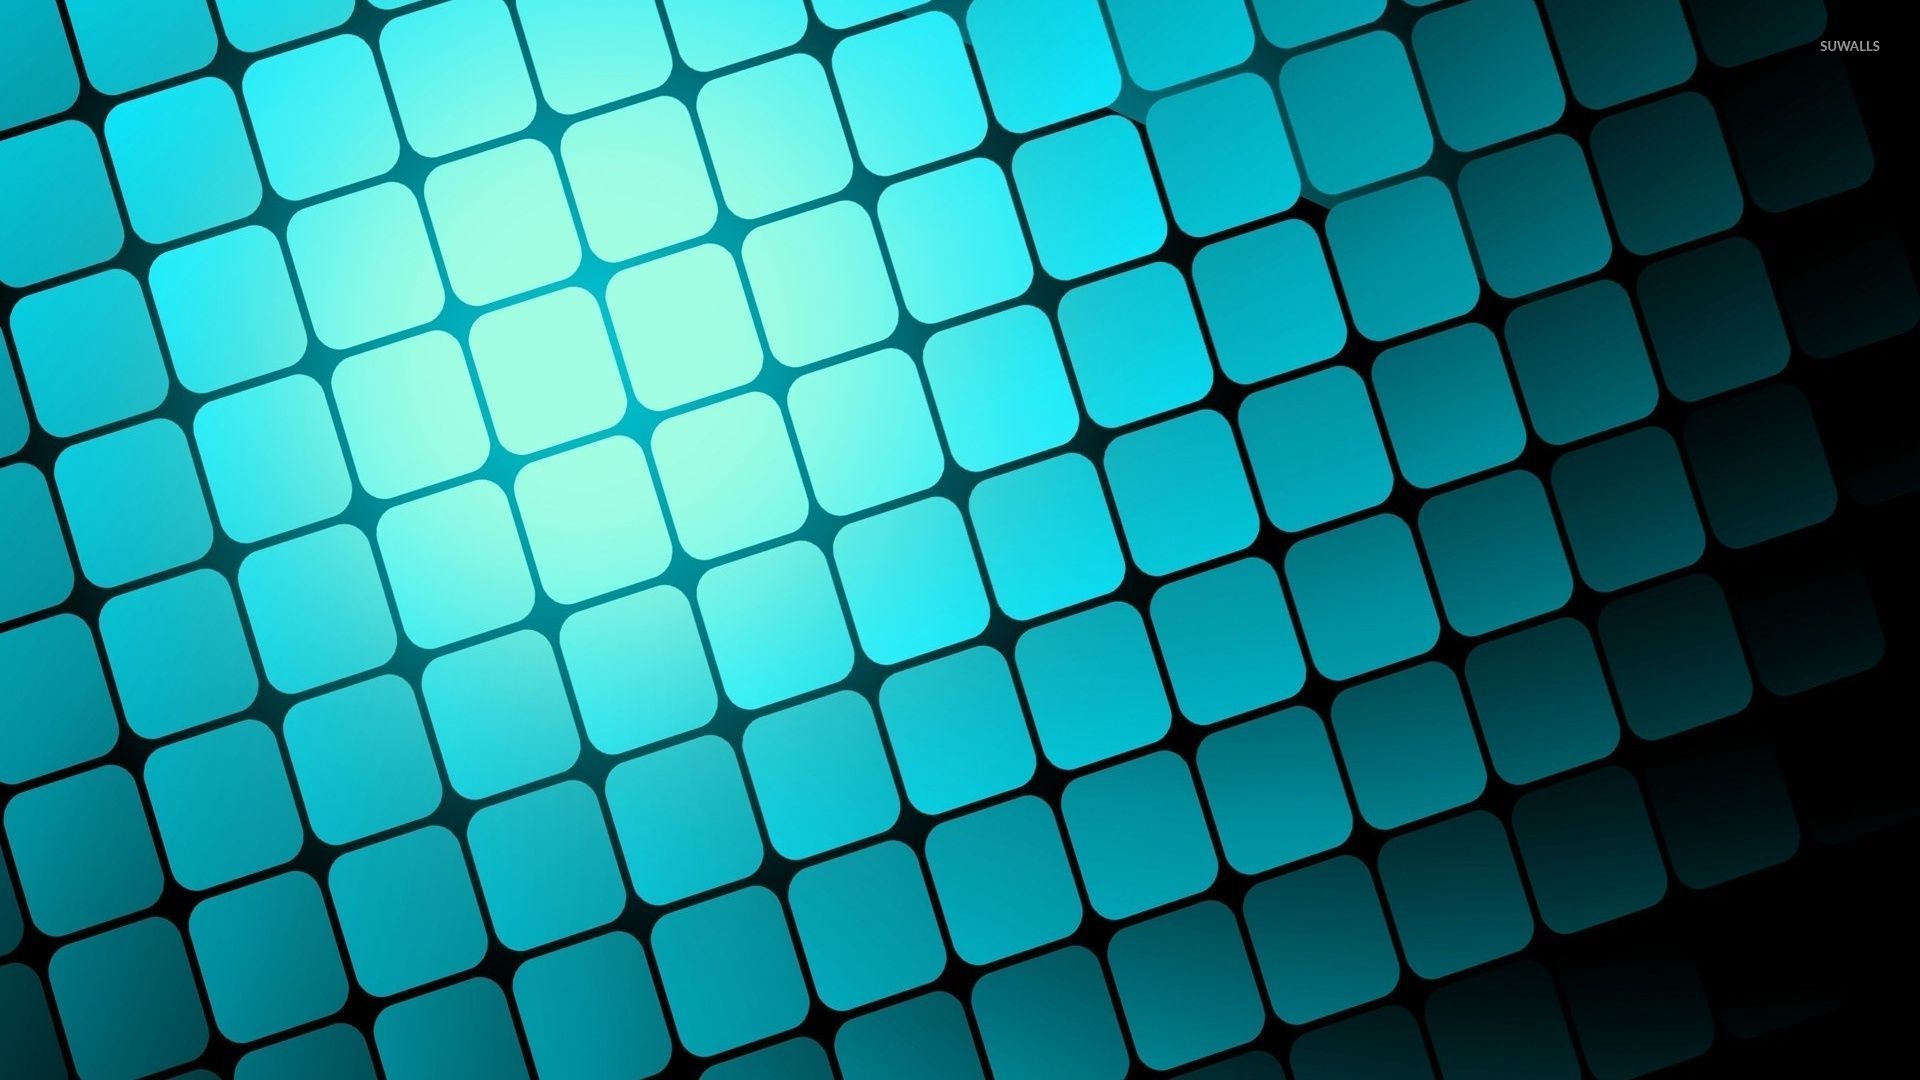 blue light squares wallpaper digital art wallpapers 54150